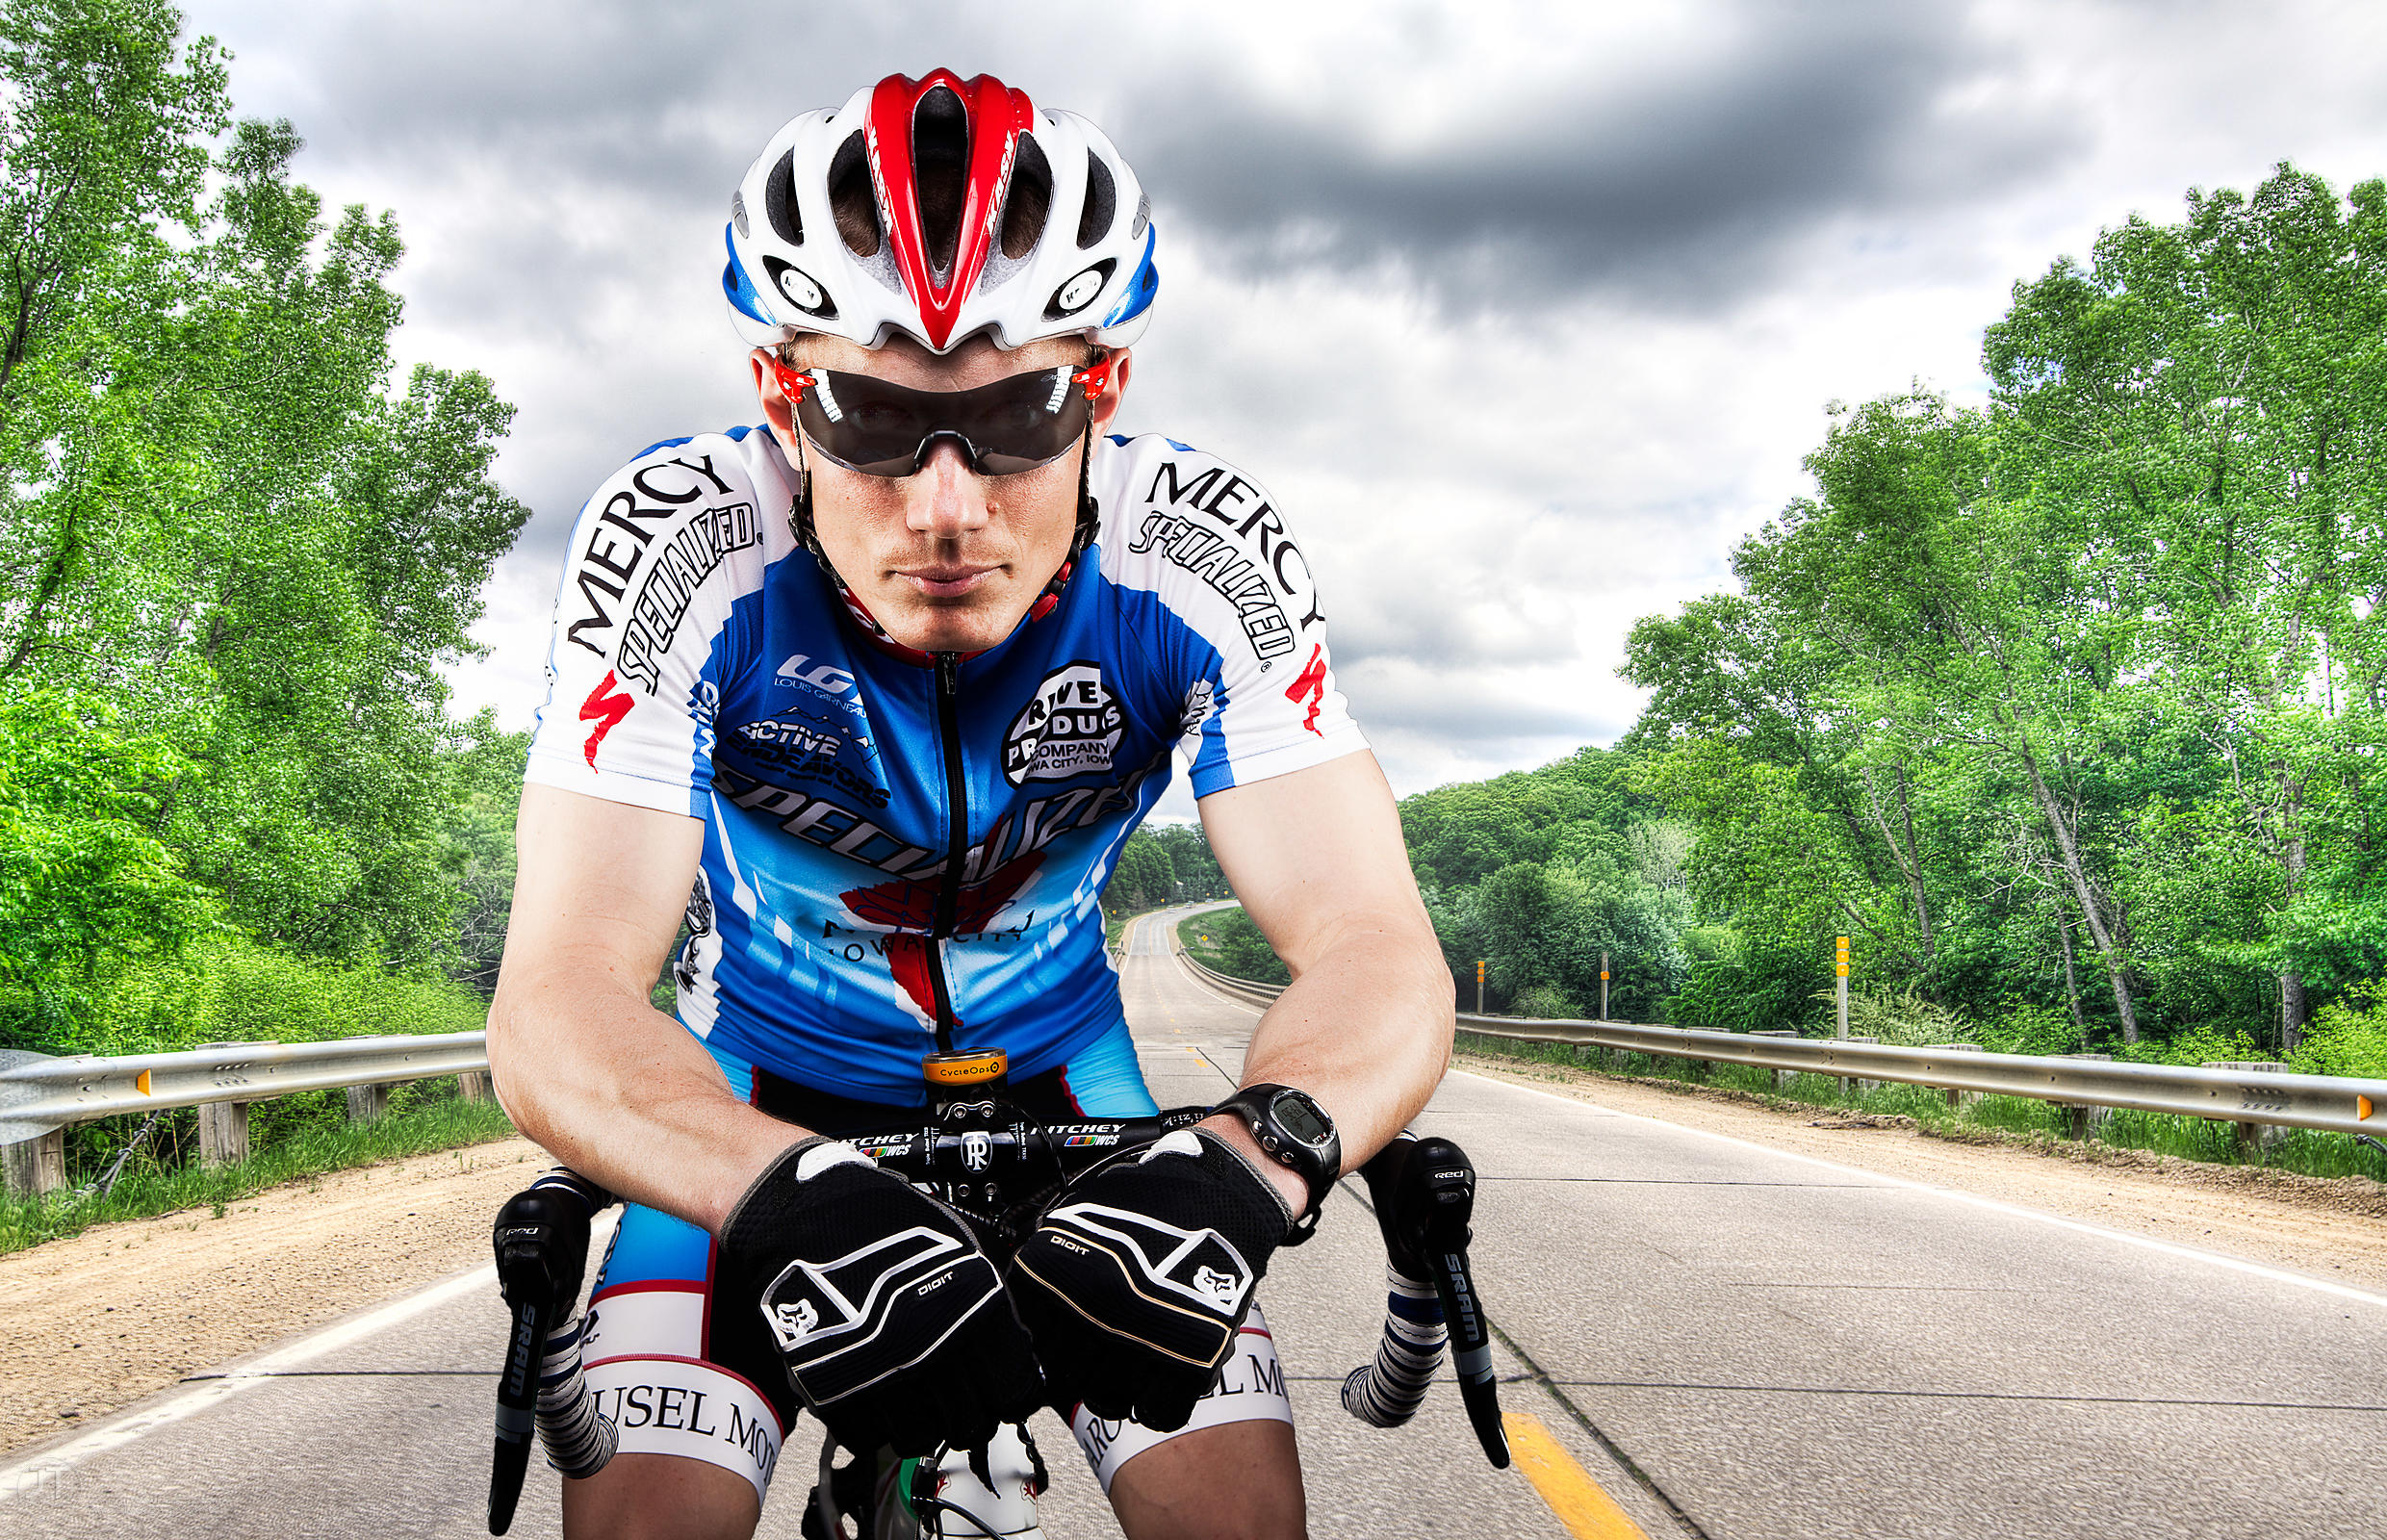 Mario Czarnomski, Pro Cat 1 Racer, Iowa City Cycling Club (Justin Torner/Freelance)